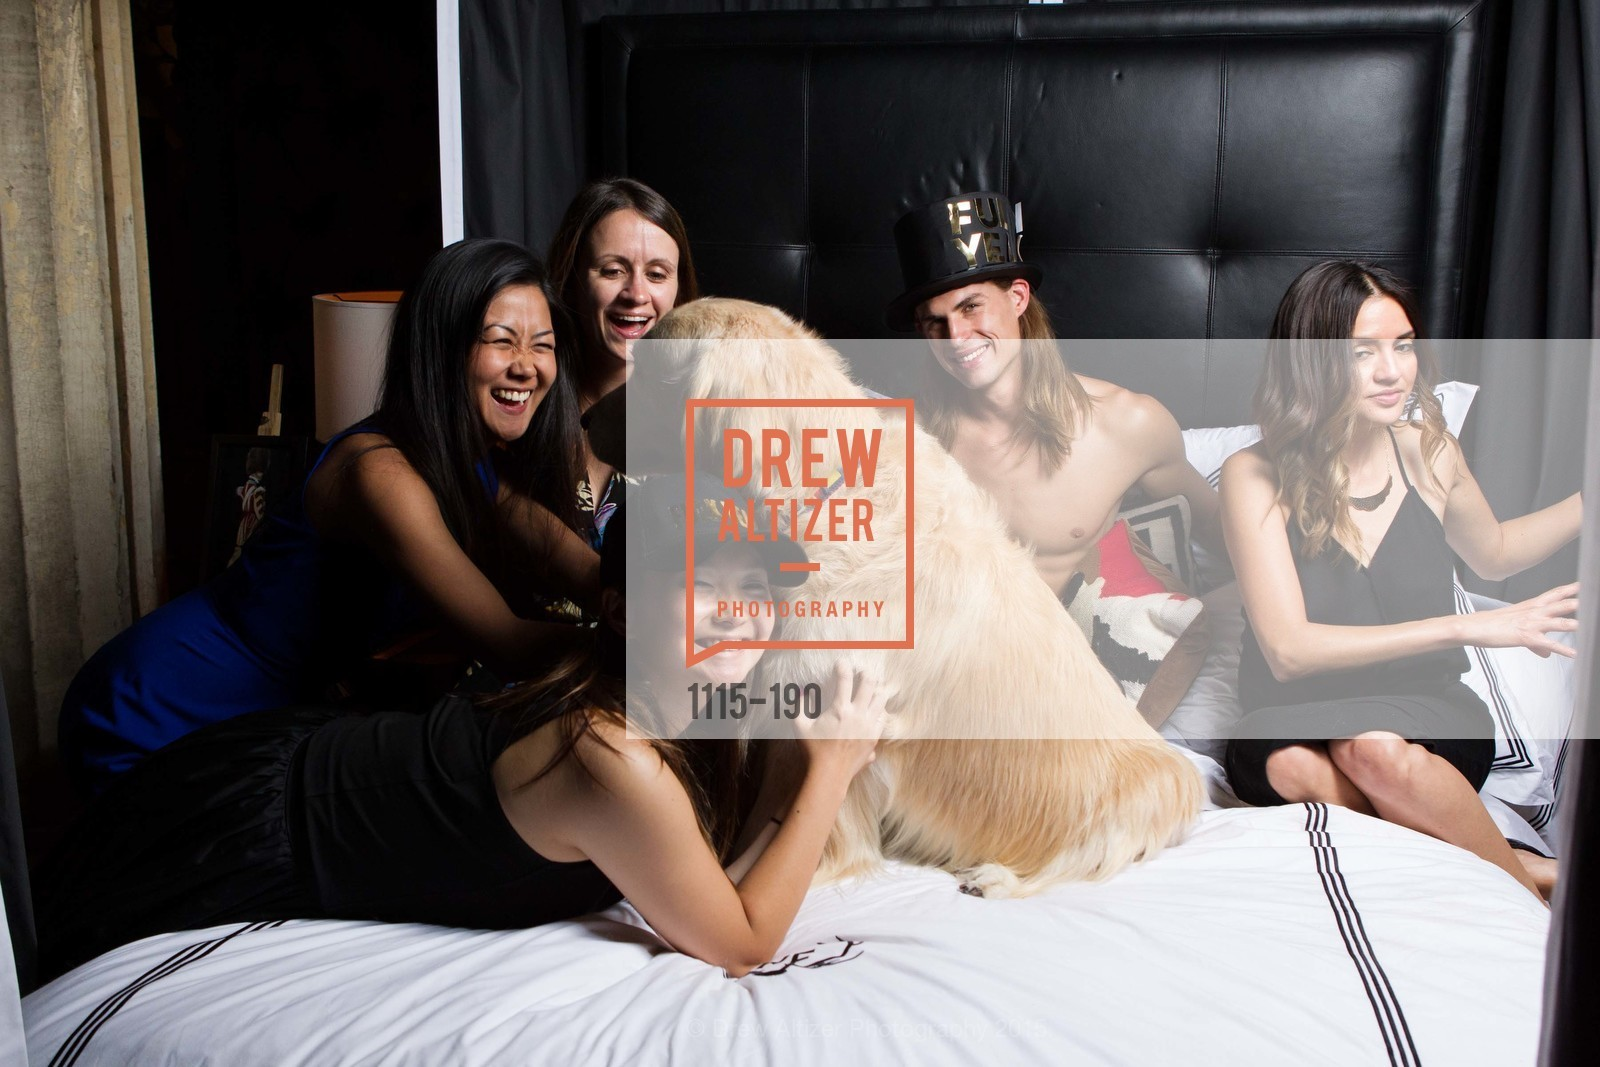 Andie Nishita, Winston Black, Cynthia Fuentes, KEN FULK'S New Furniture Line Unveiling at THE MAGIC FACTORY, The Magic Factory. 310 7th St, June 25th, 2015,Drew Altizer, Drew Altizer Photography, full-service agency, private events, San Francisco photographer, photographer california